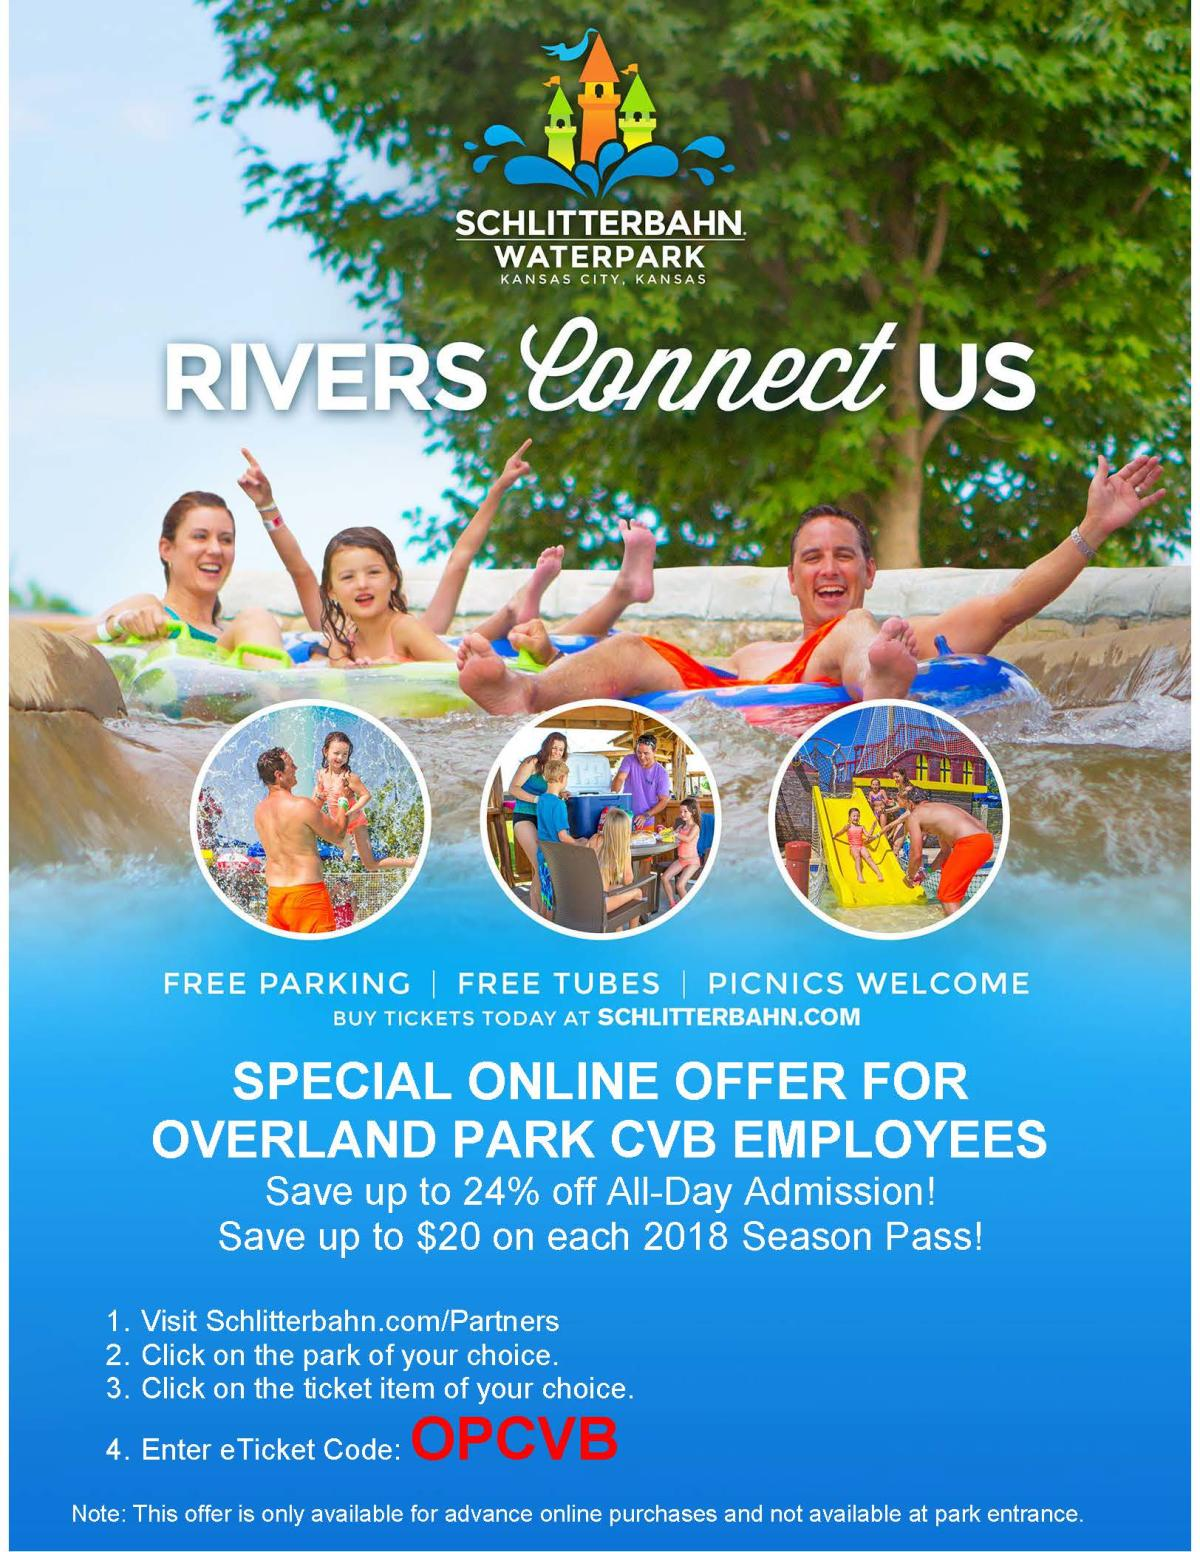 photograph relating to Schlitterbahn Printable Coupons named Schlitterbahn tickets - Suitable economical good television